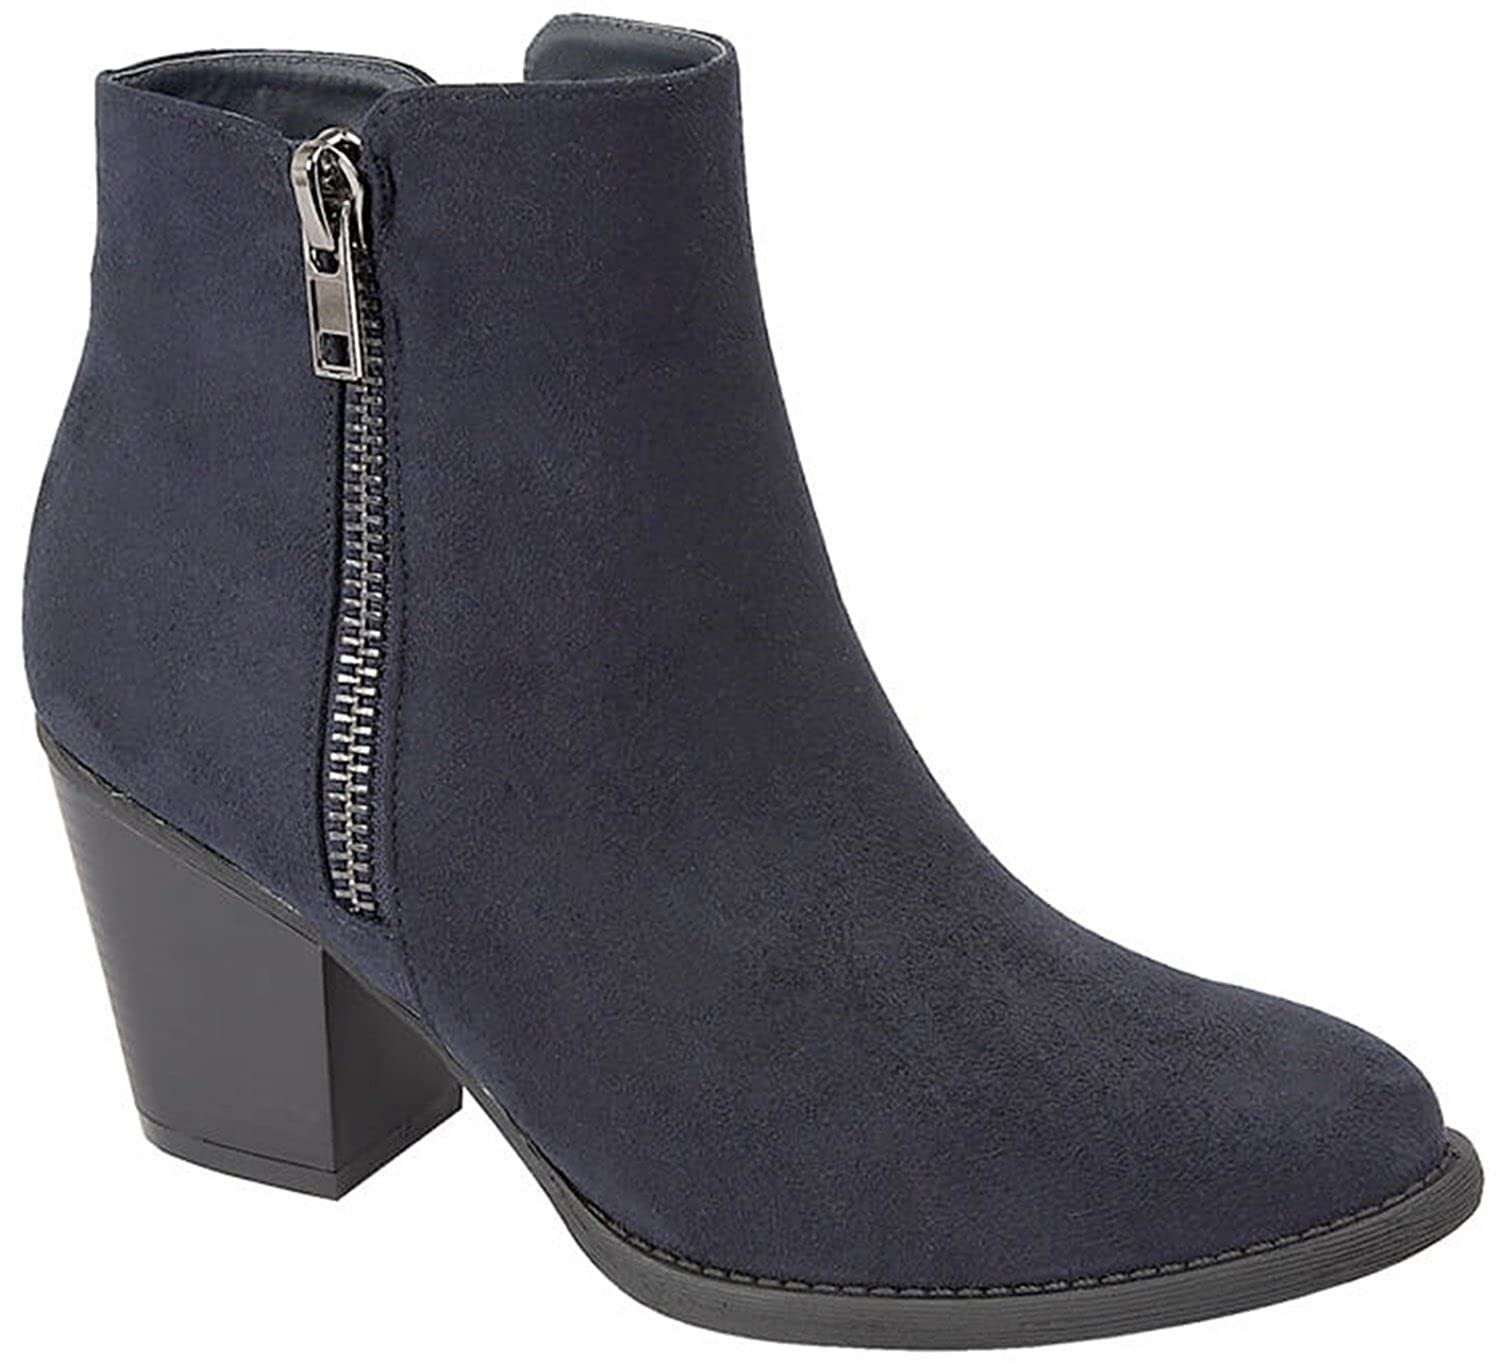 Buy Lilley Womens Black Buckle Detail Ankle Boot-18640 picture trends